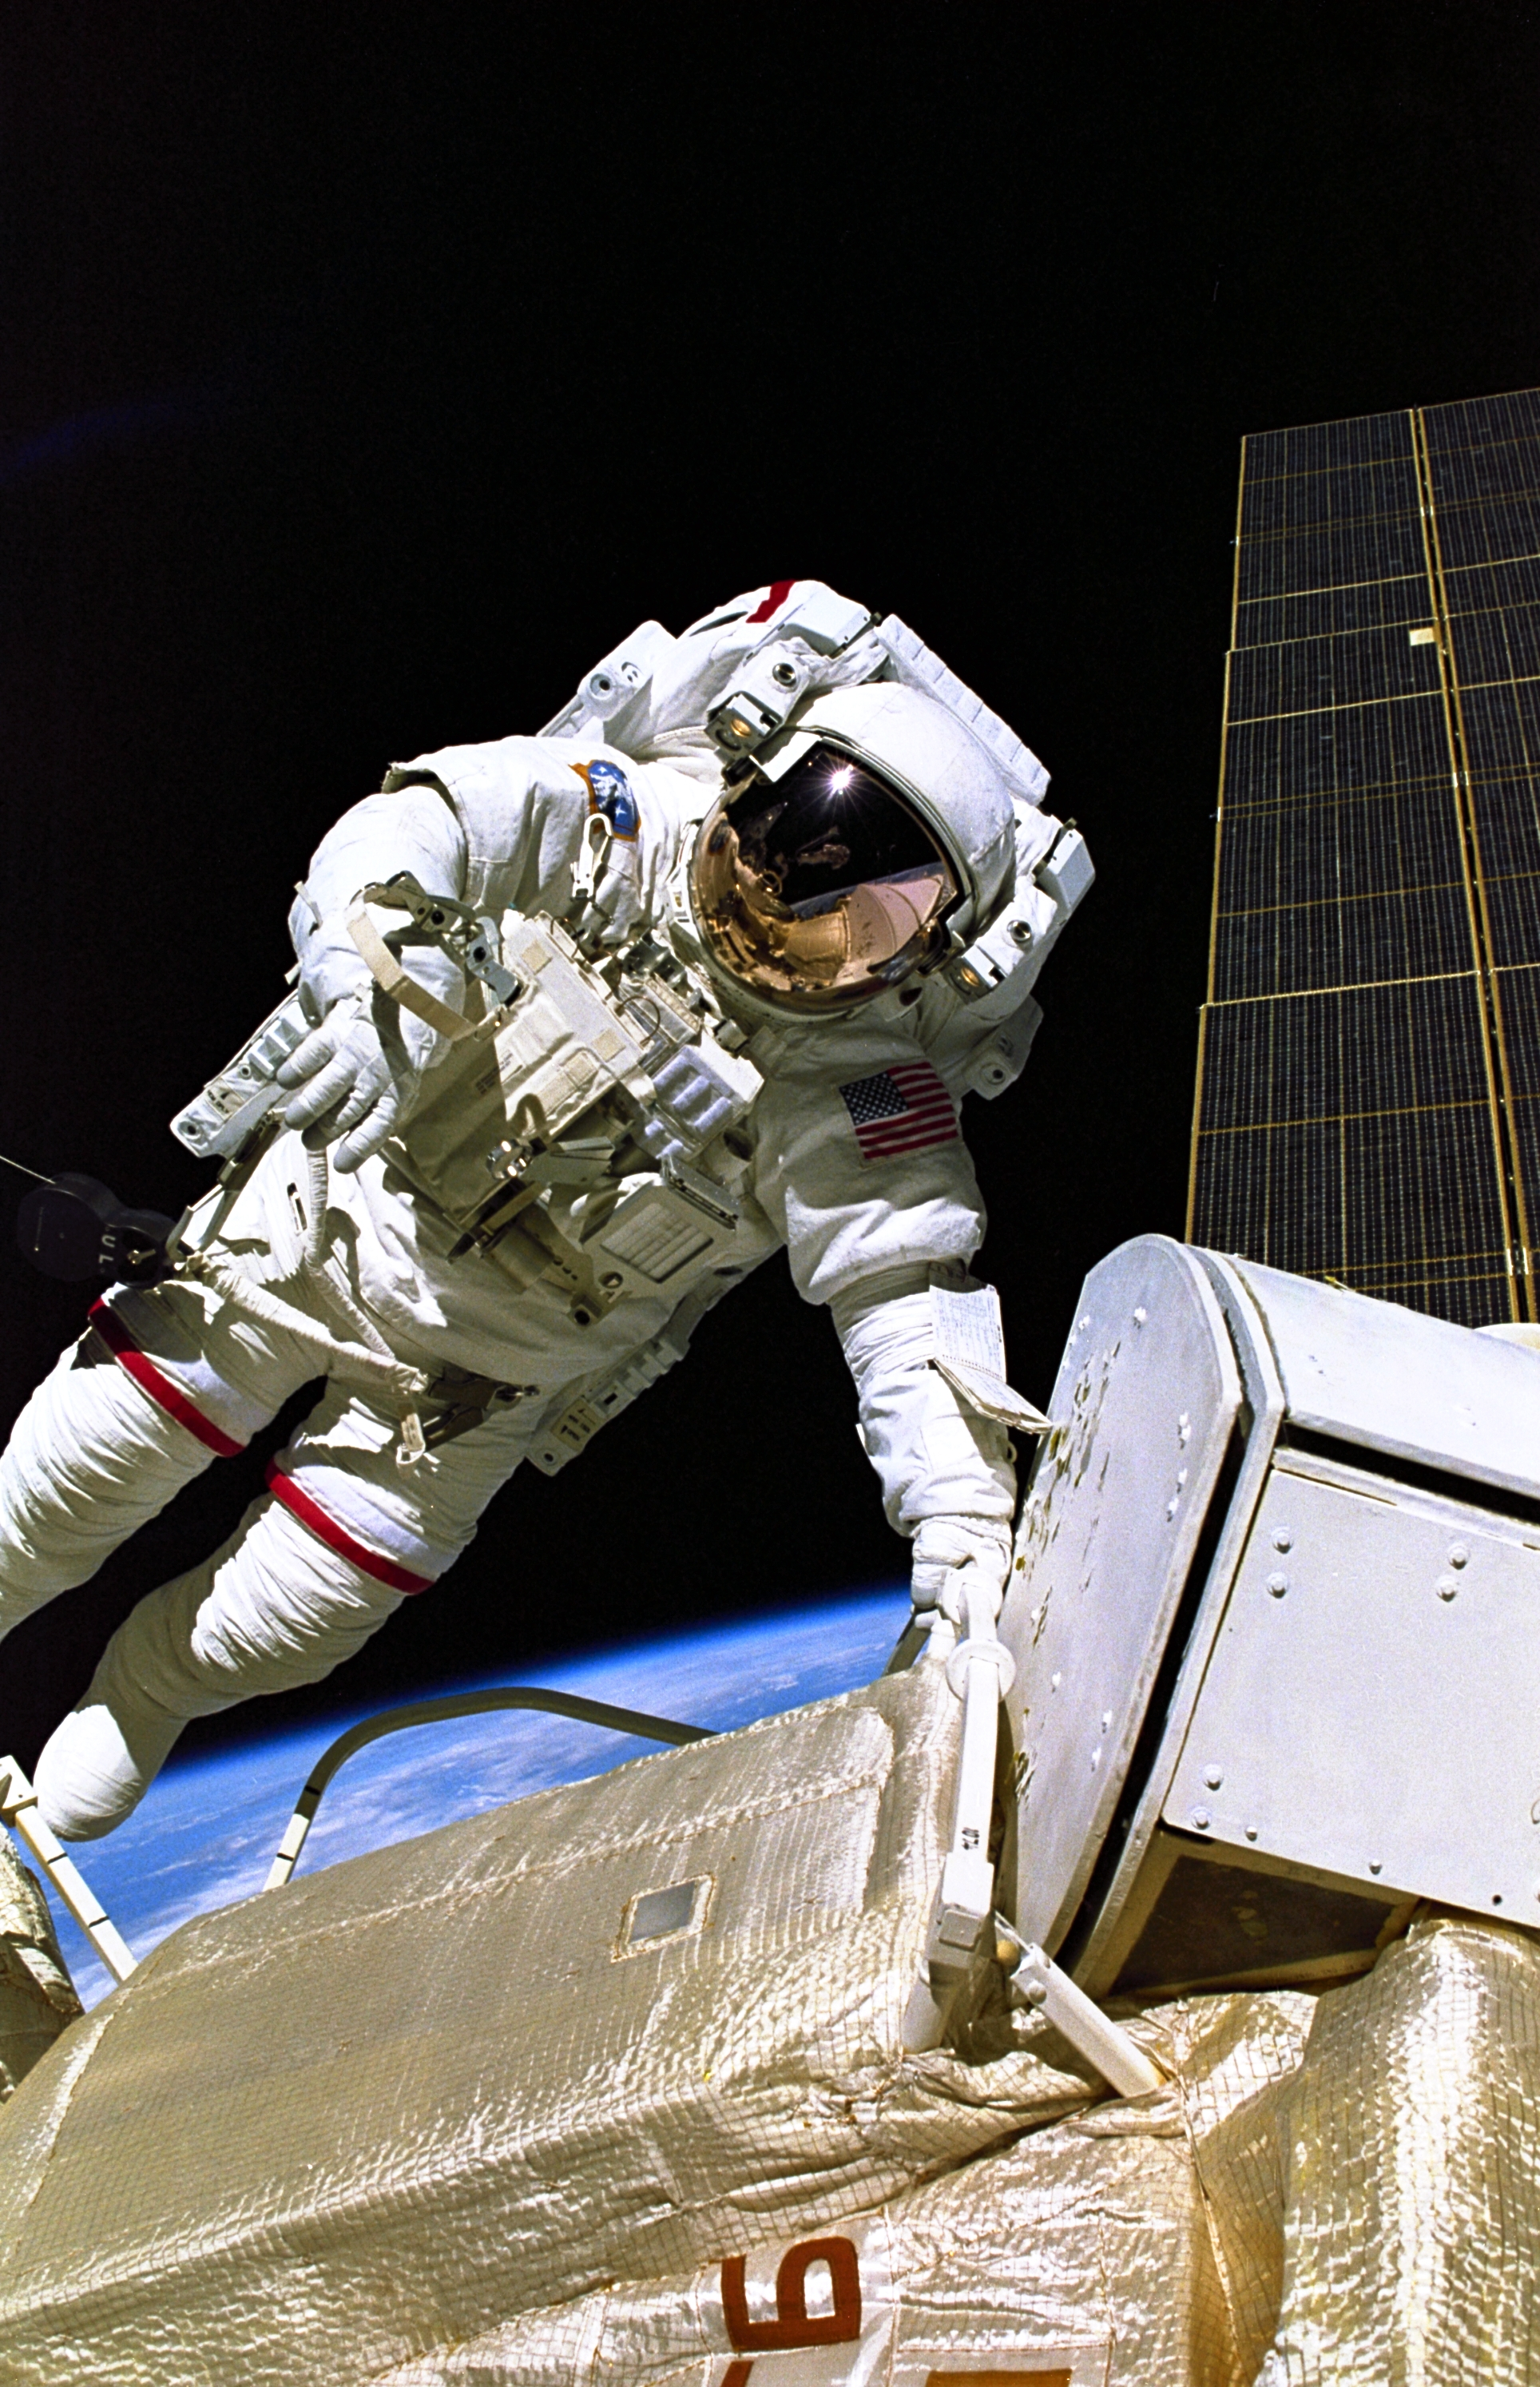 astronaut in the space - photo #1